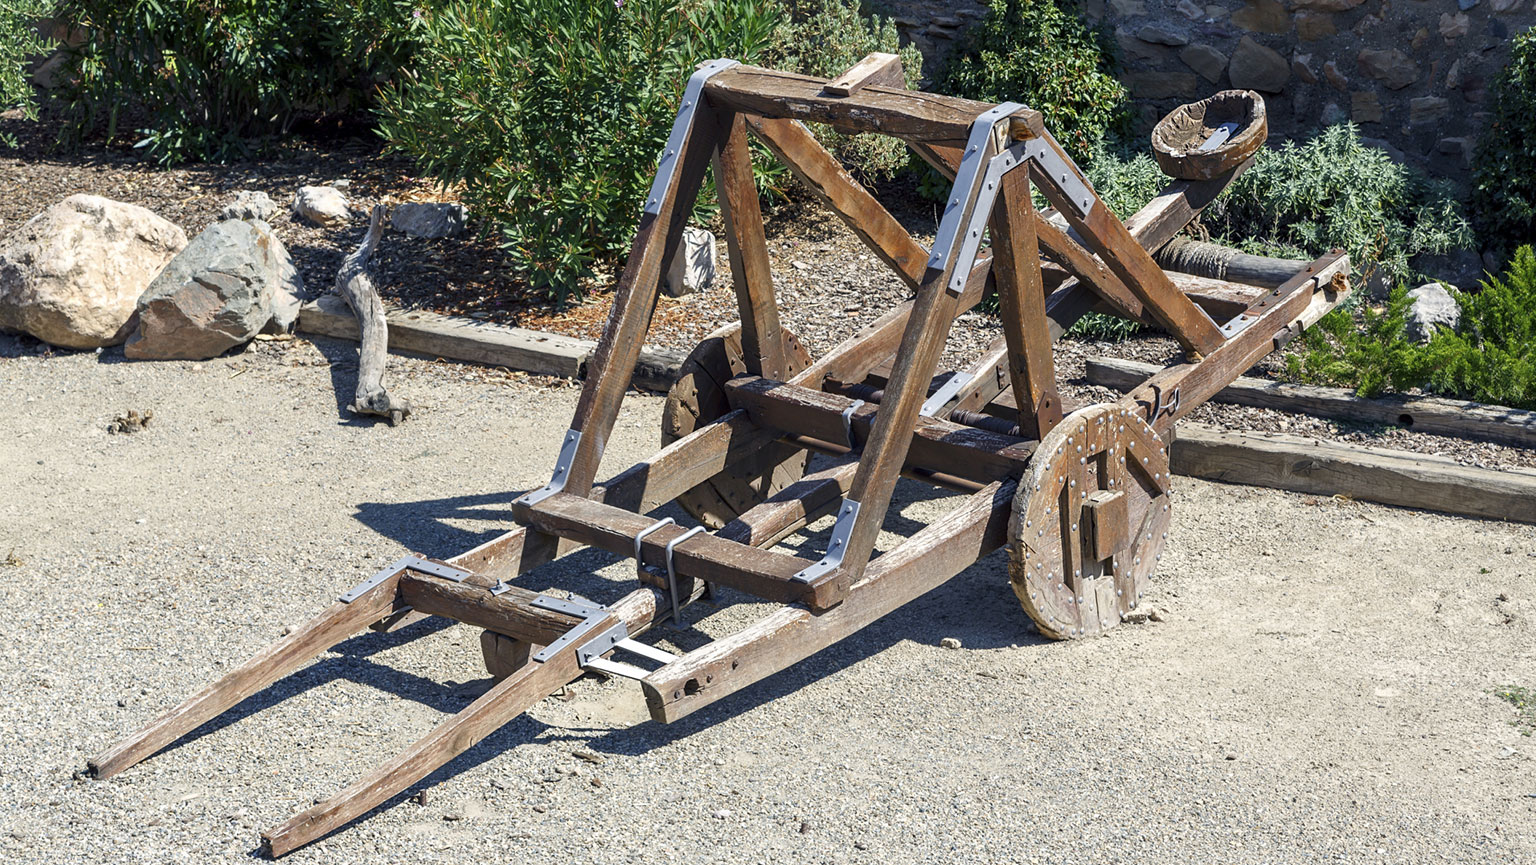 Machines at War—Evolution of the Catapult